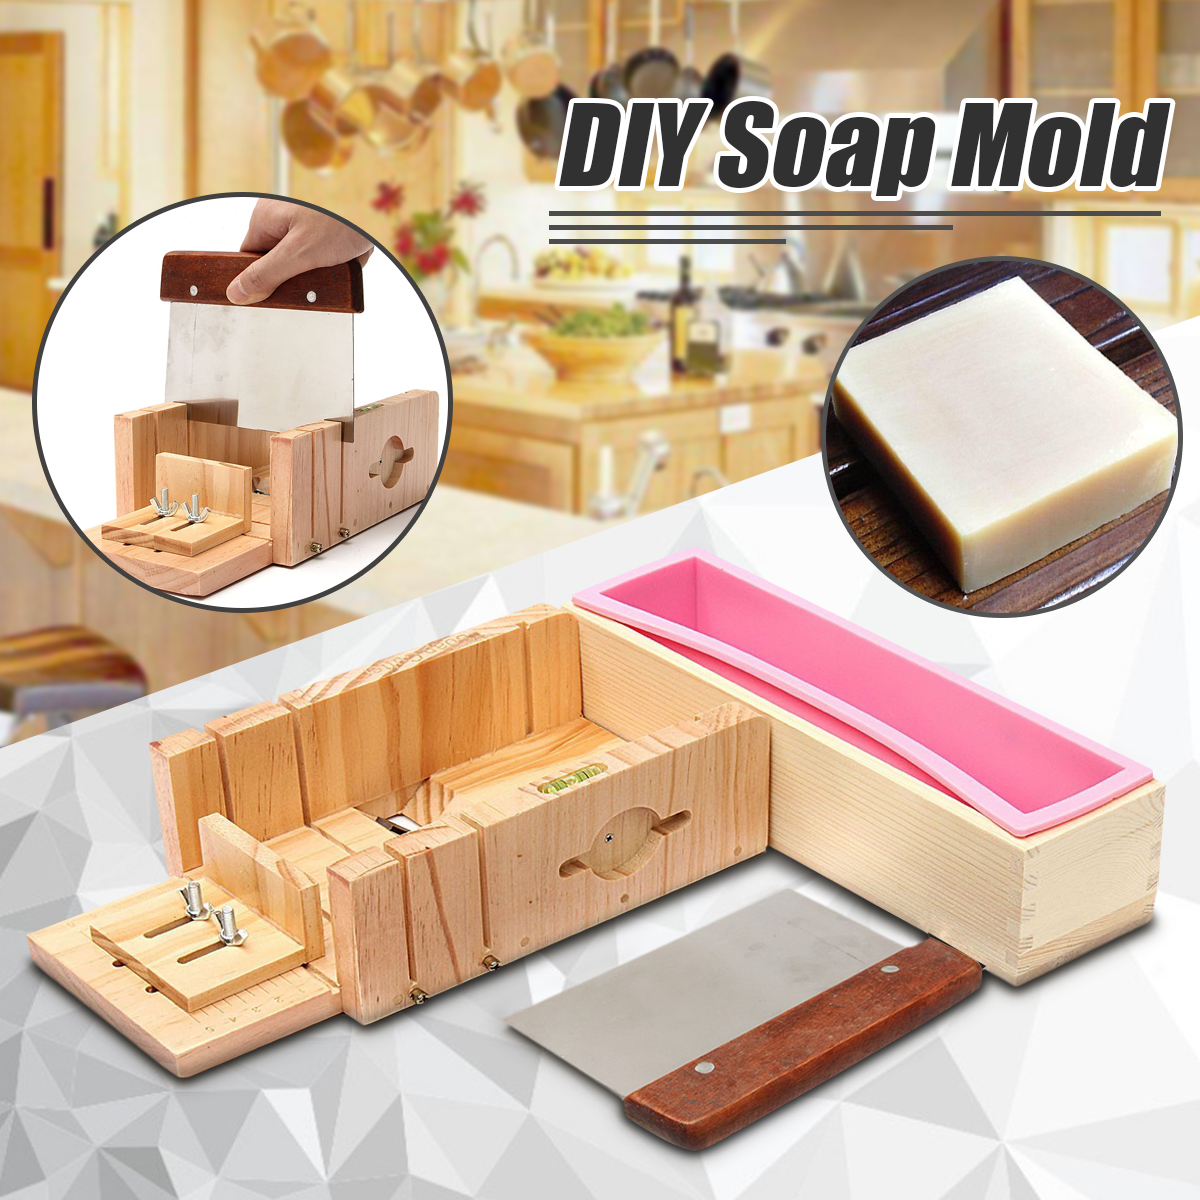 OUTERDO Reusable Cake Mold Cutter Silicone Soap Mold Rectangle Wooden Box DIY Toast Loaf Baking Making Tool Bake Cake Bread Toast Mold by